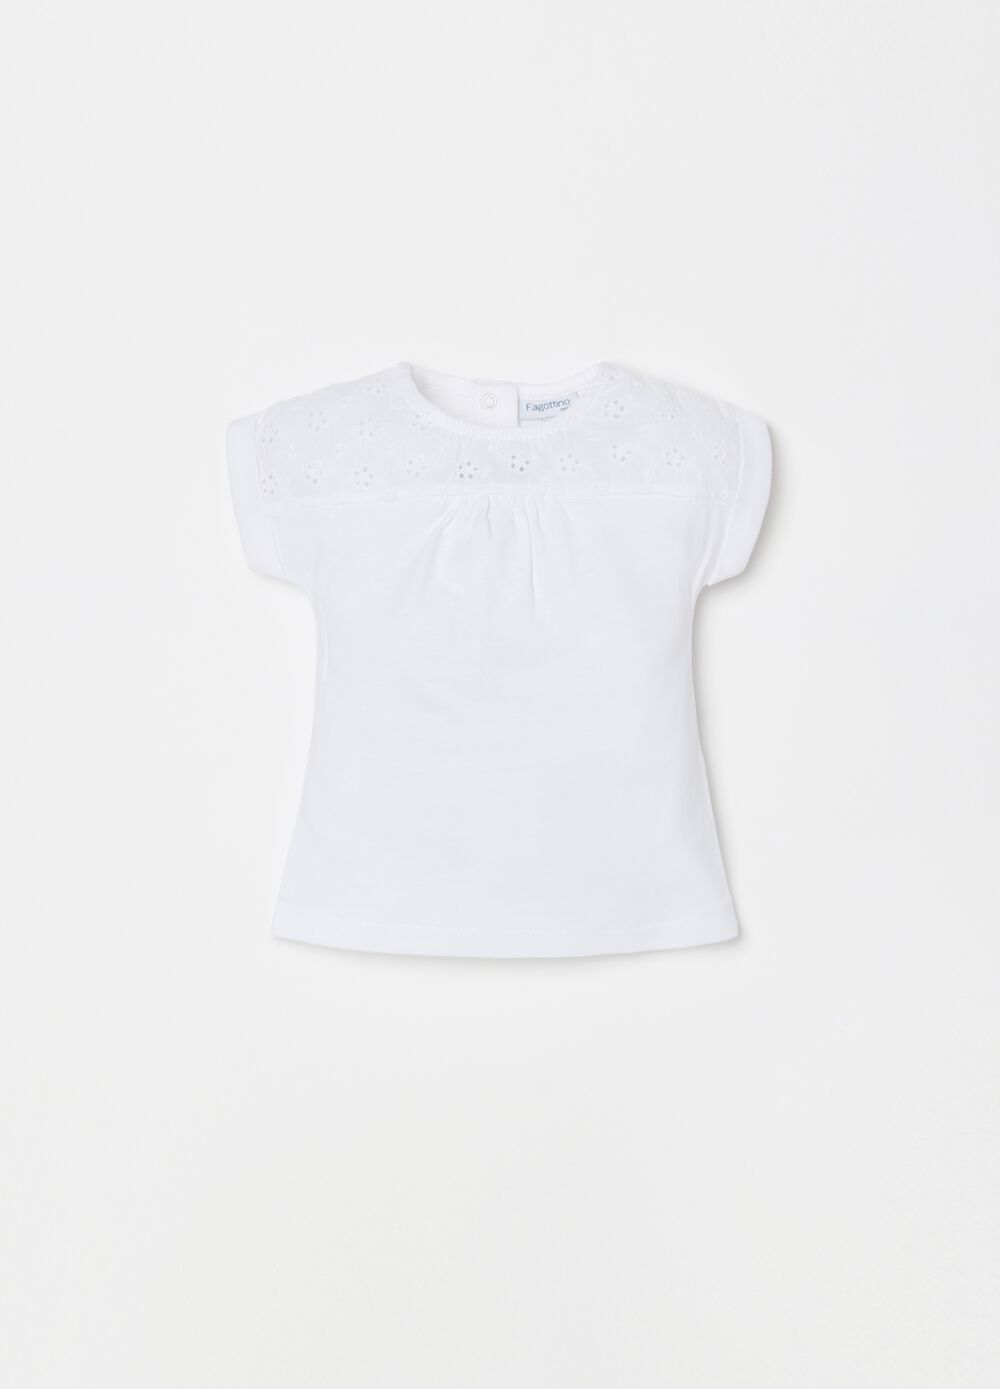 100% organic cotton T-shirt with broderie anglaise lace